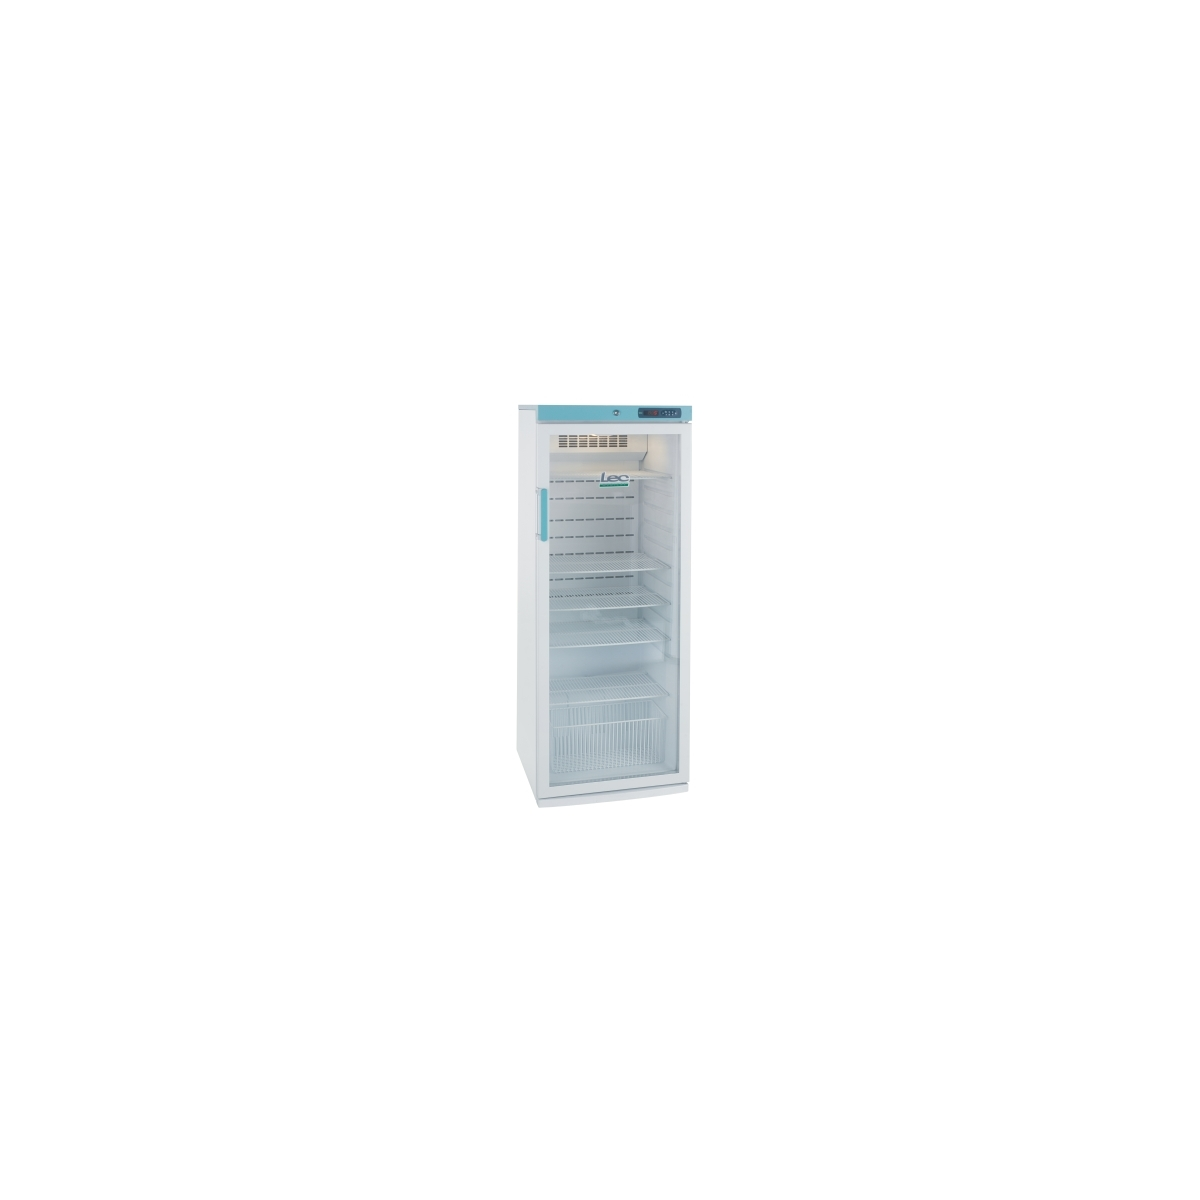 PGRC273UK Pharmacy Fridge with Glass Door - 273 litre